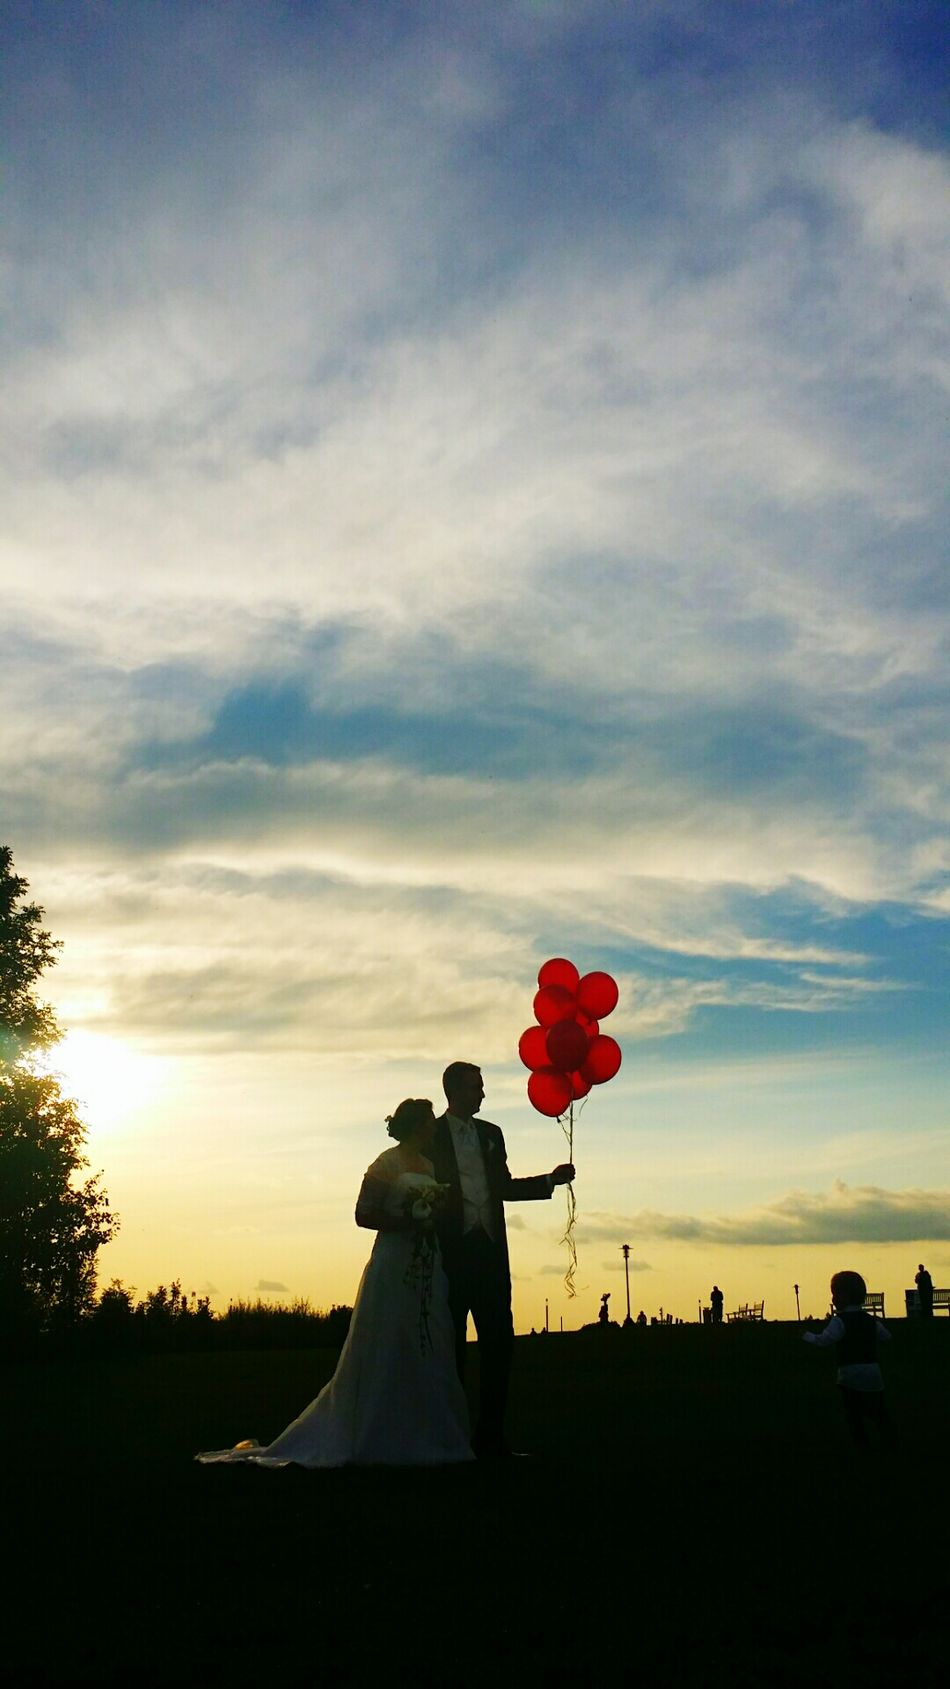 TakeoverContrast Wedding Balloons Red Blue Black Bride Handsman Outside Photograpy Sky Clouds Contrast Contrast Silhouette Summer Marrying Vertical Space Wedding Card